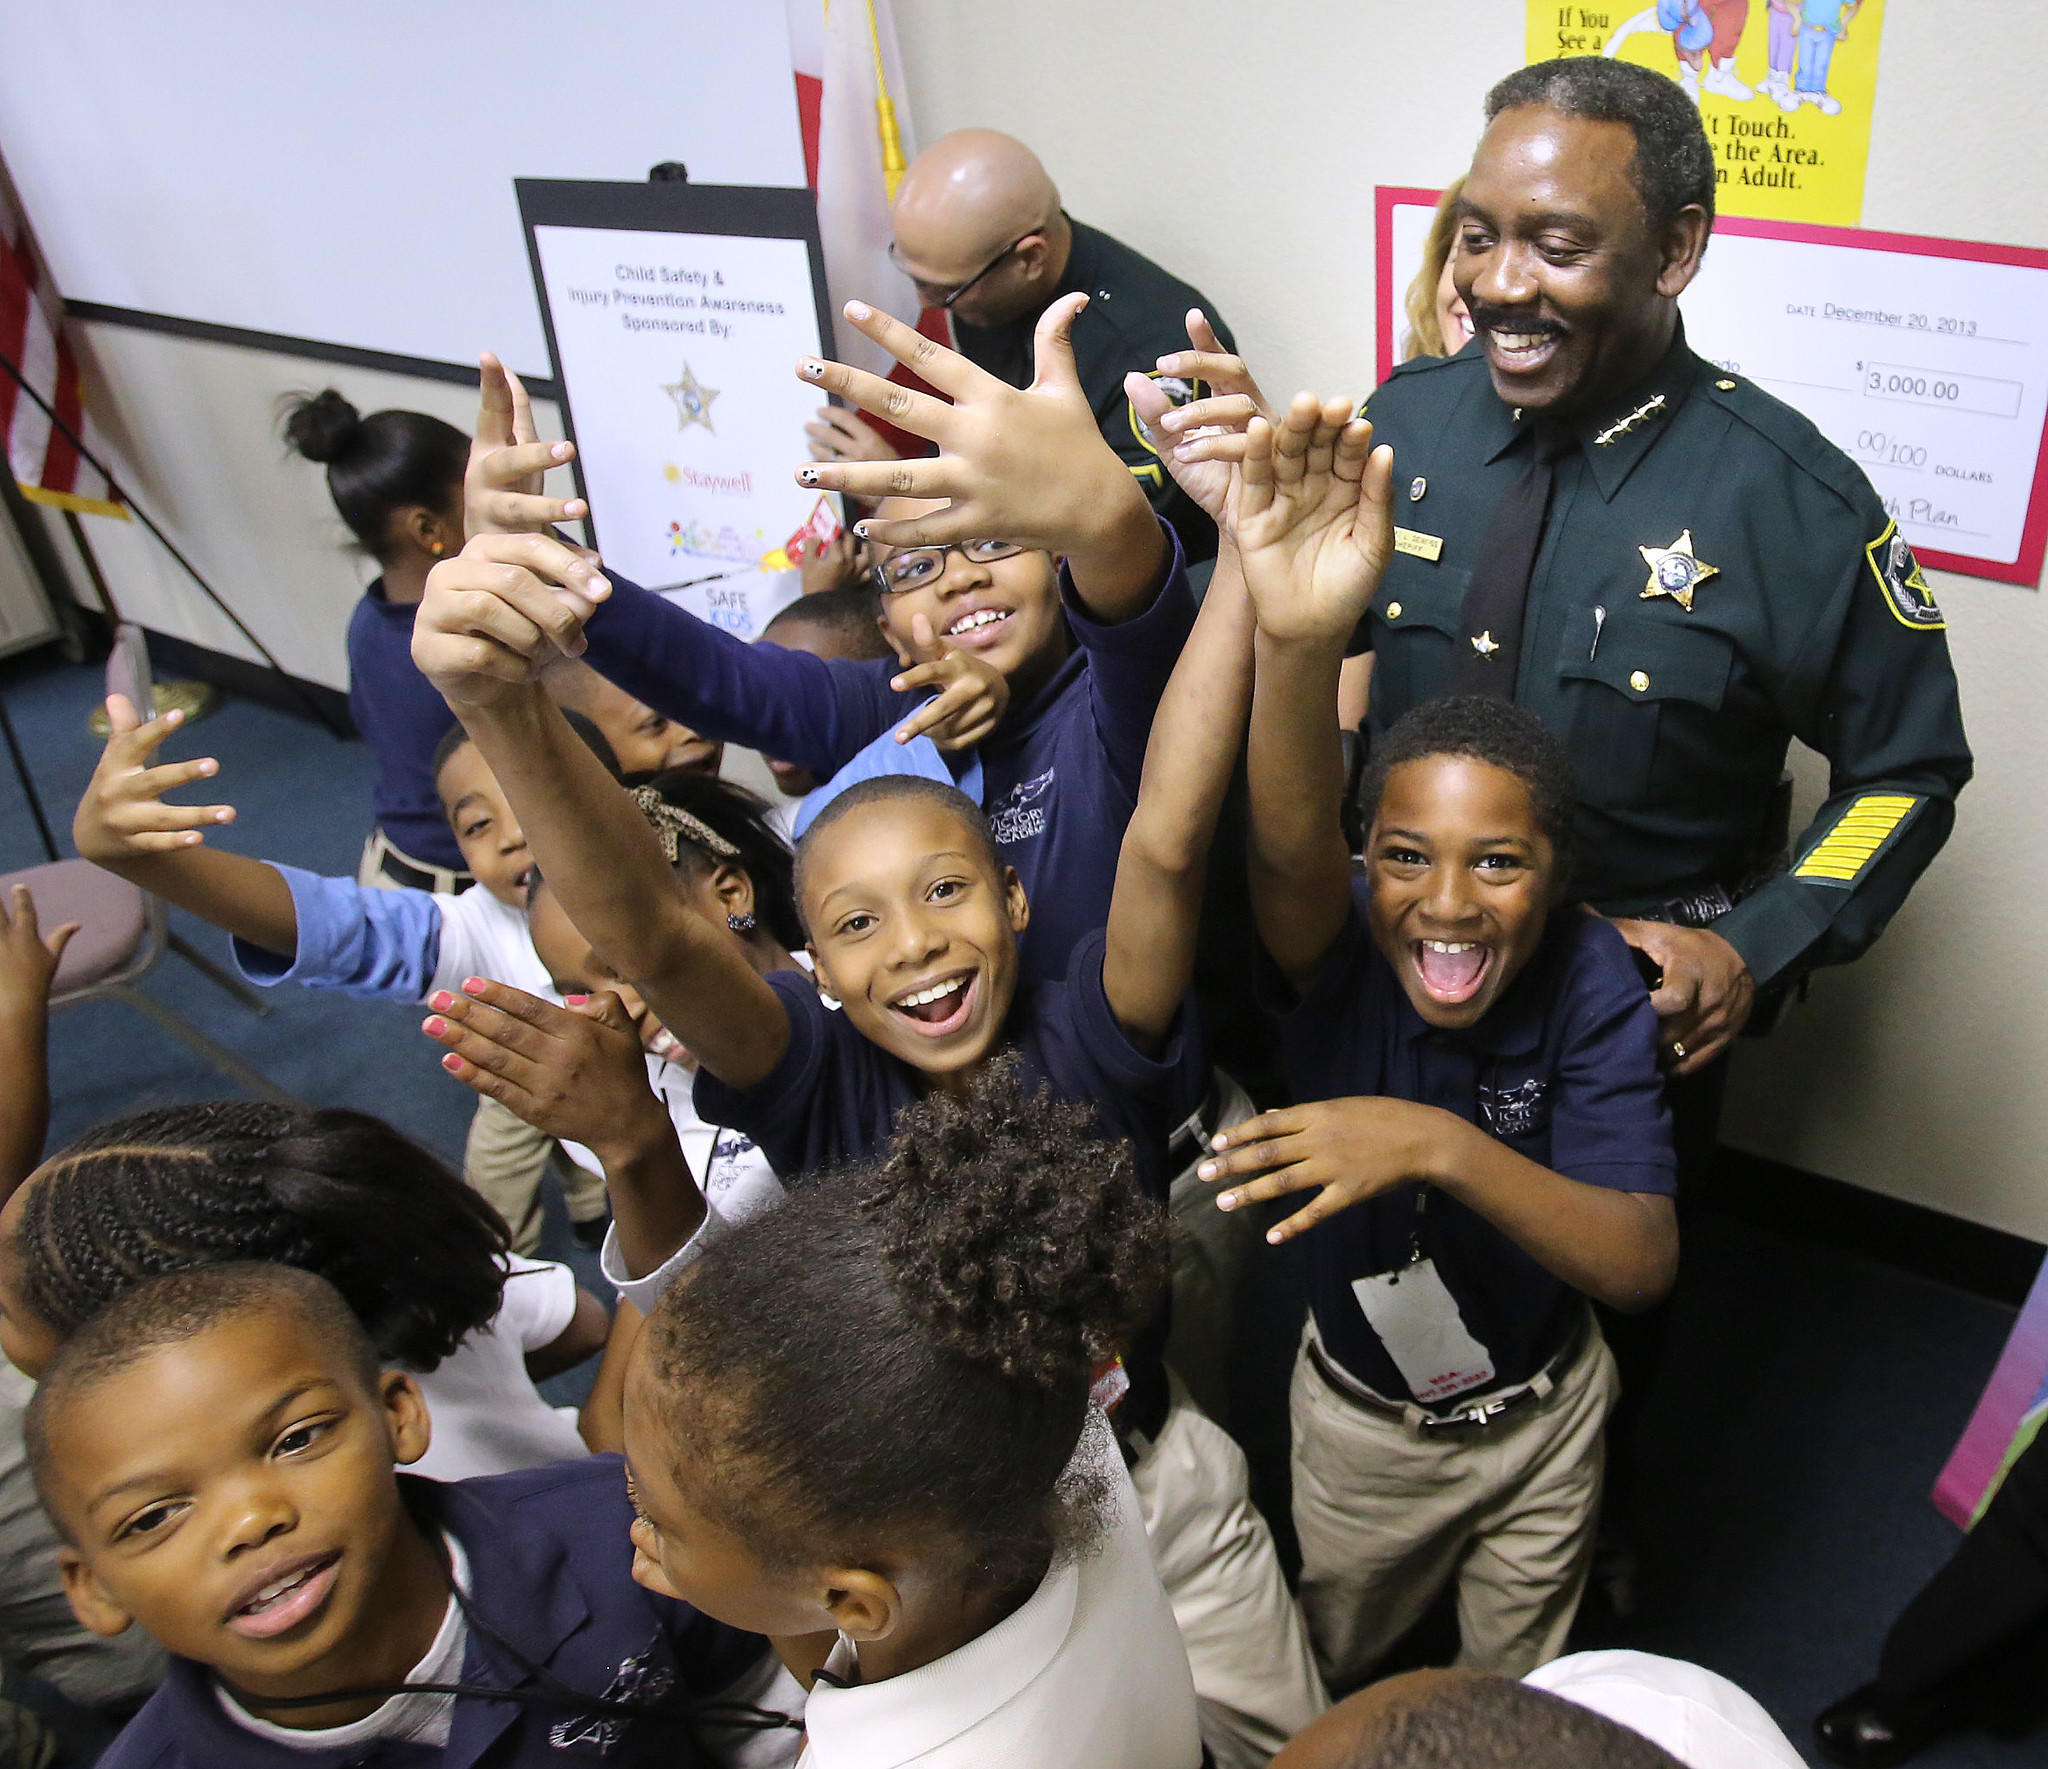 Students from Victory Christian Academy of Orlando joke with Orange County Sheriff Jerry Demings during the announcement for the Project ChildSafe program in Orlando, Thursday, Jan. 29, 2014.